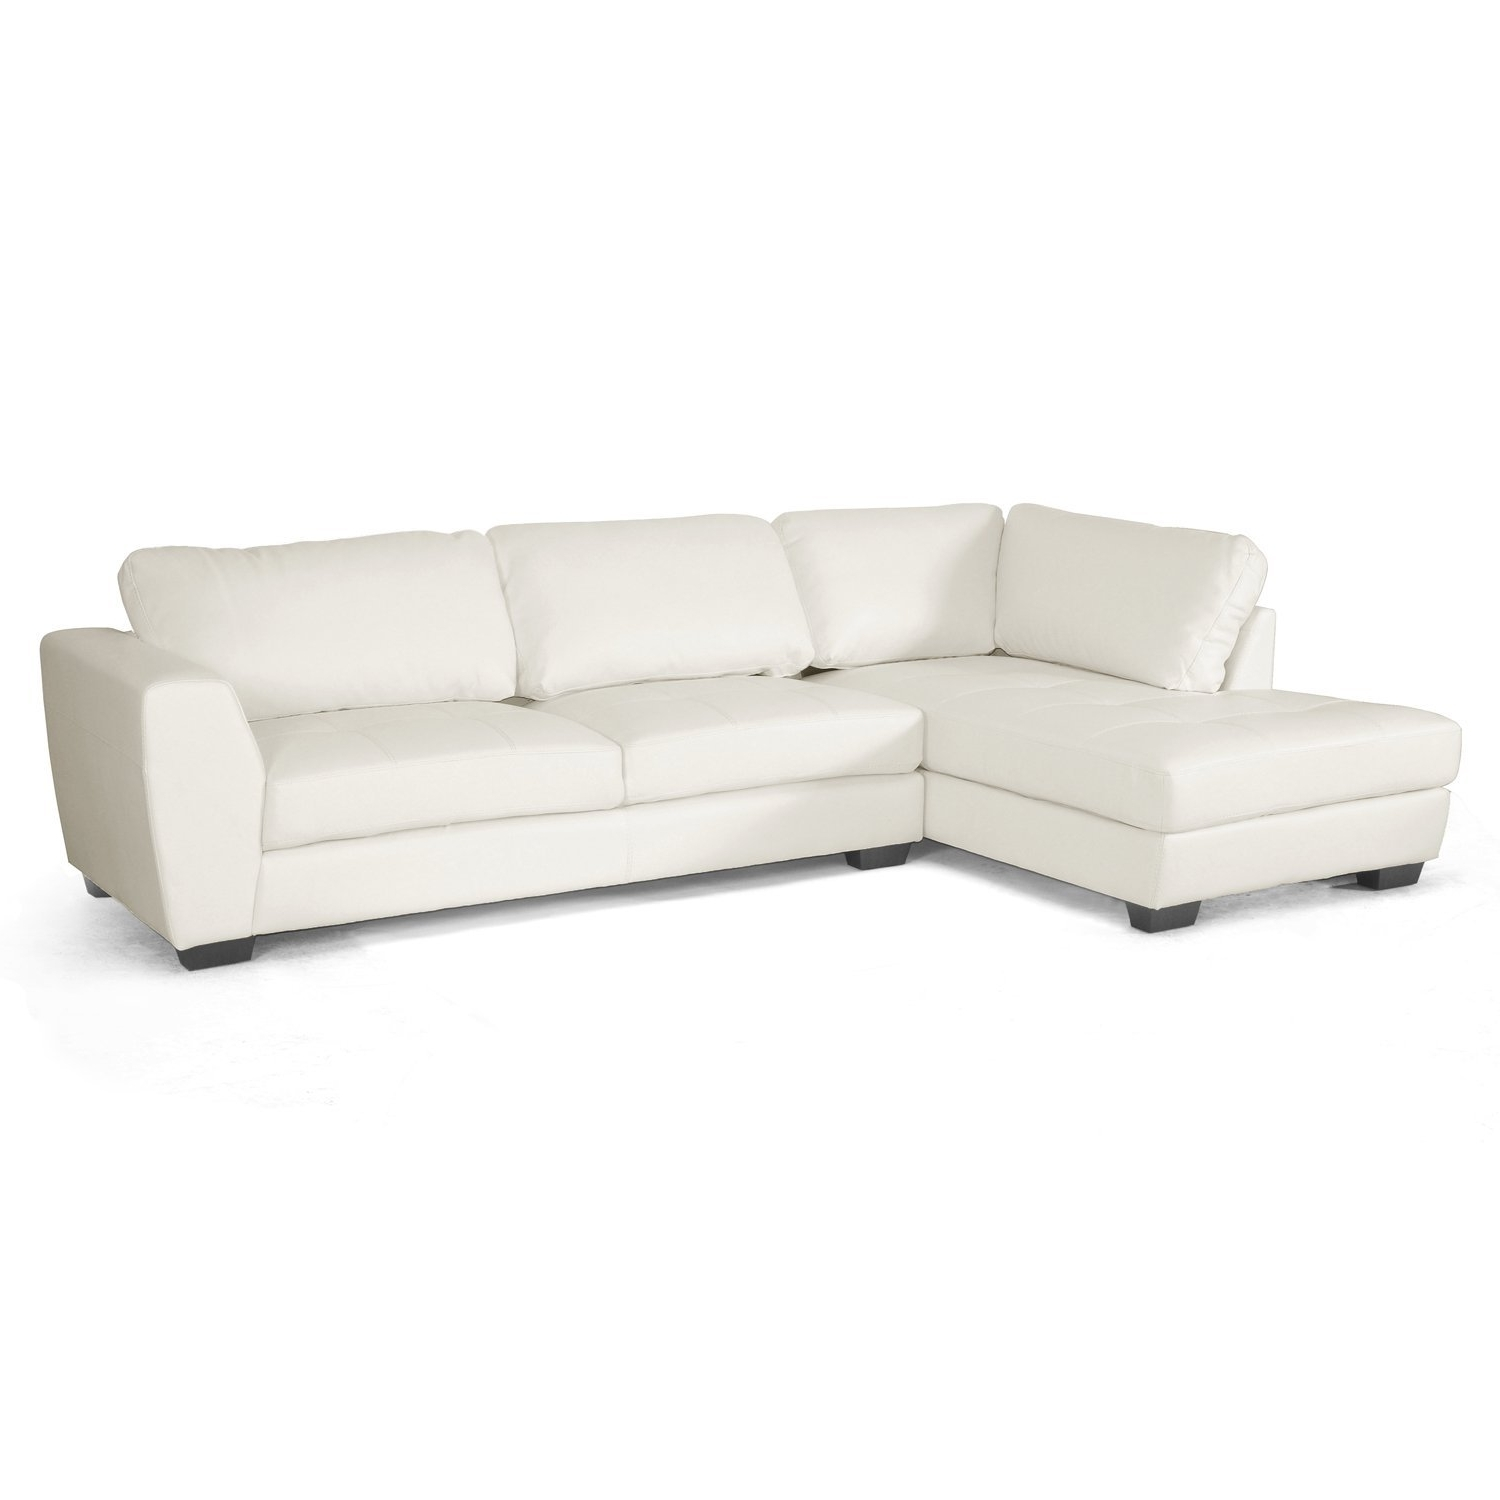 White Leather Sectionals With Chaise Intended For Most Recent Amazon: Baxton Studio Orland Leather Modern Sectional Sofa Set (View 12 of 15)